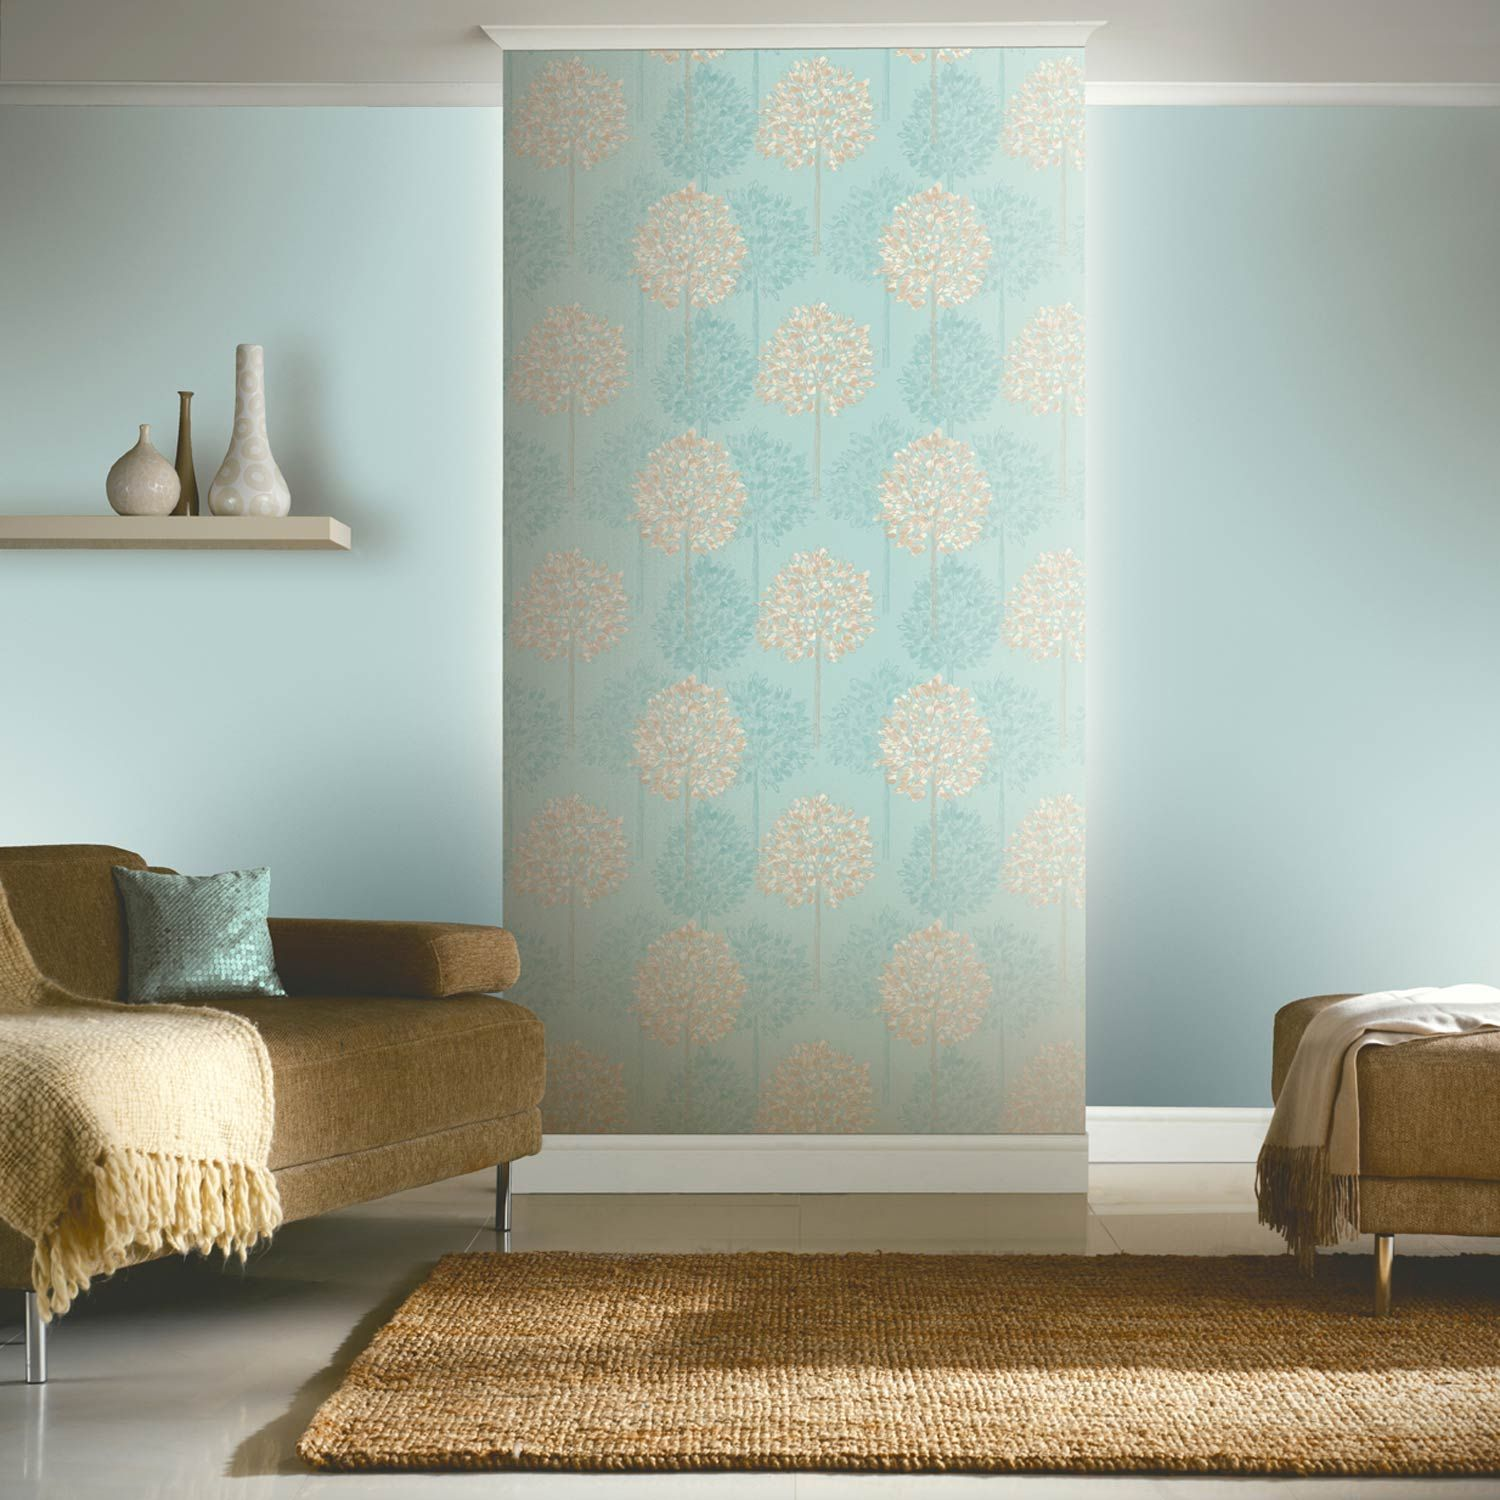 Boulevard Teal Wallpaper By Arthouse Gallery Wall Living